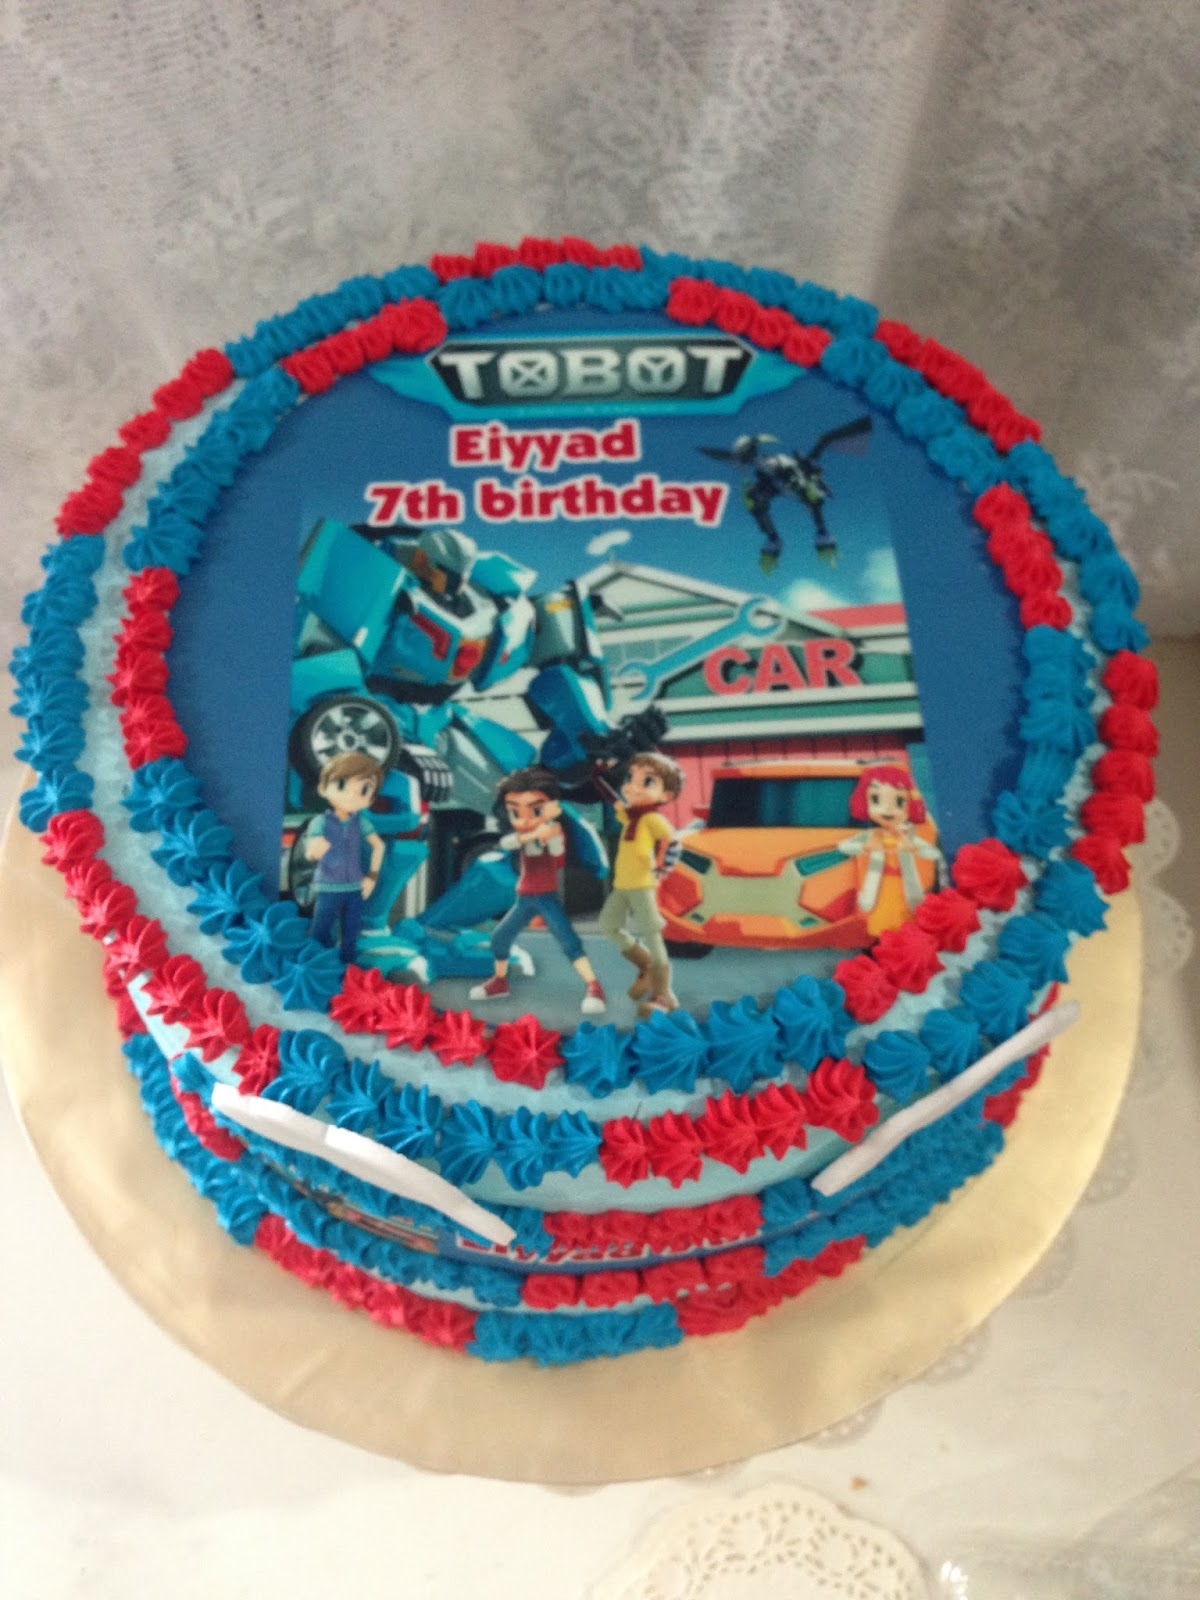 Birthday Cake Edible Pictures : ninie cakes house: Tobot Birthday Cake with Edible Image